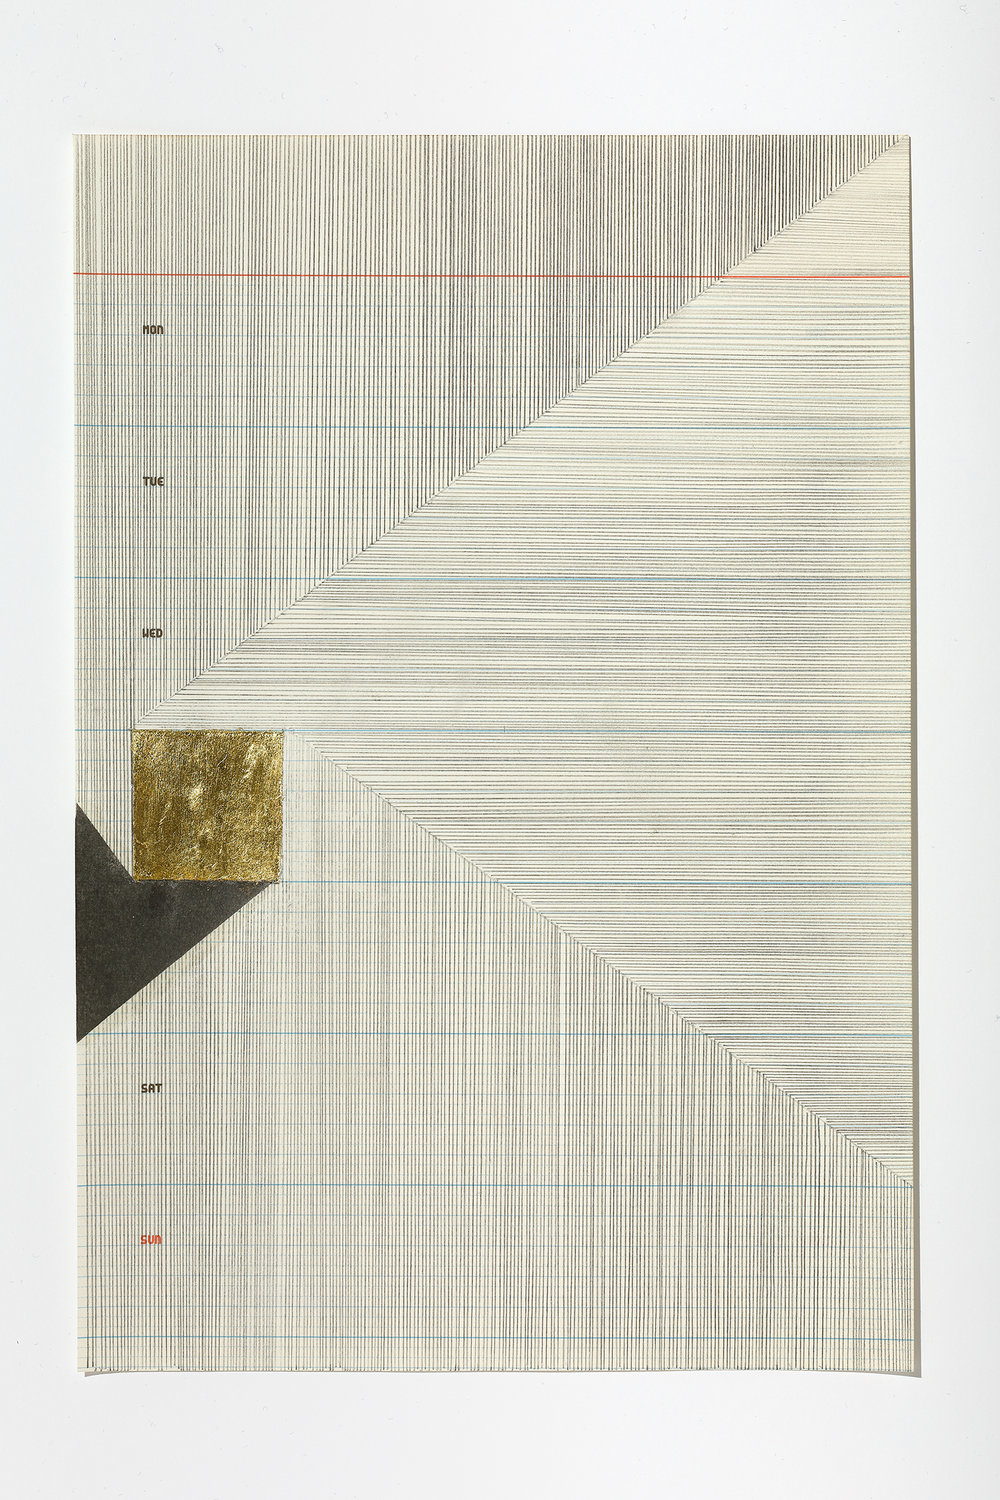 Untitled (4/6) ,2017 graphite and gold leaf on paper, 28,5 x 19,5 cm